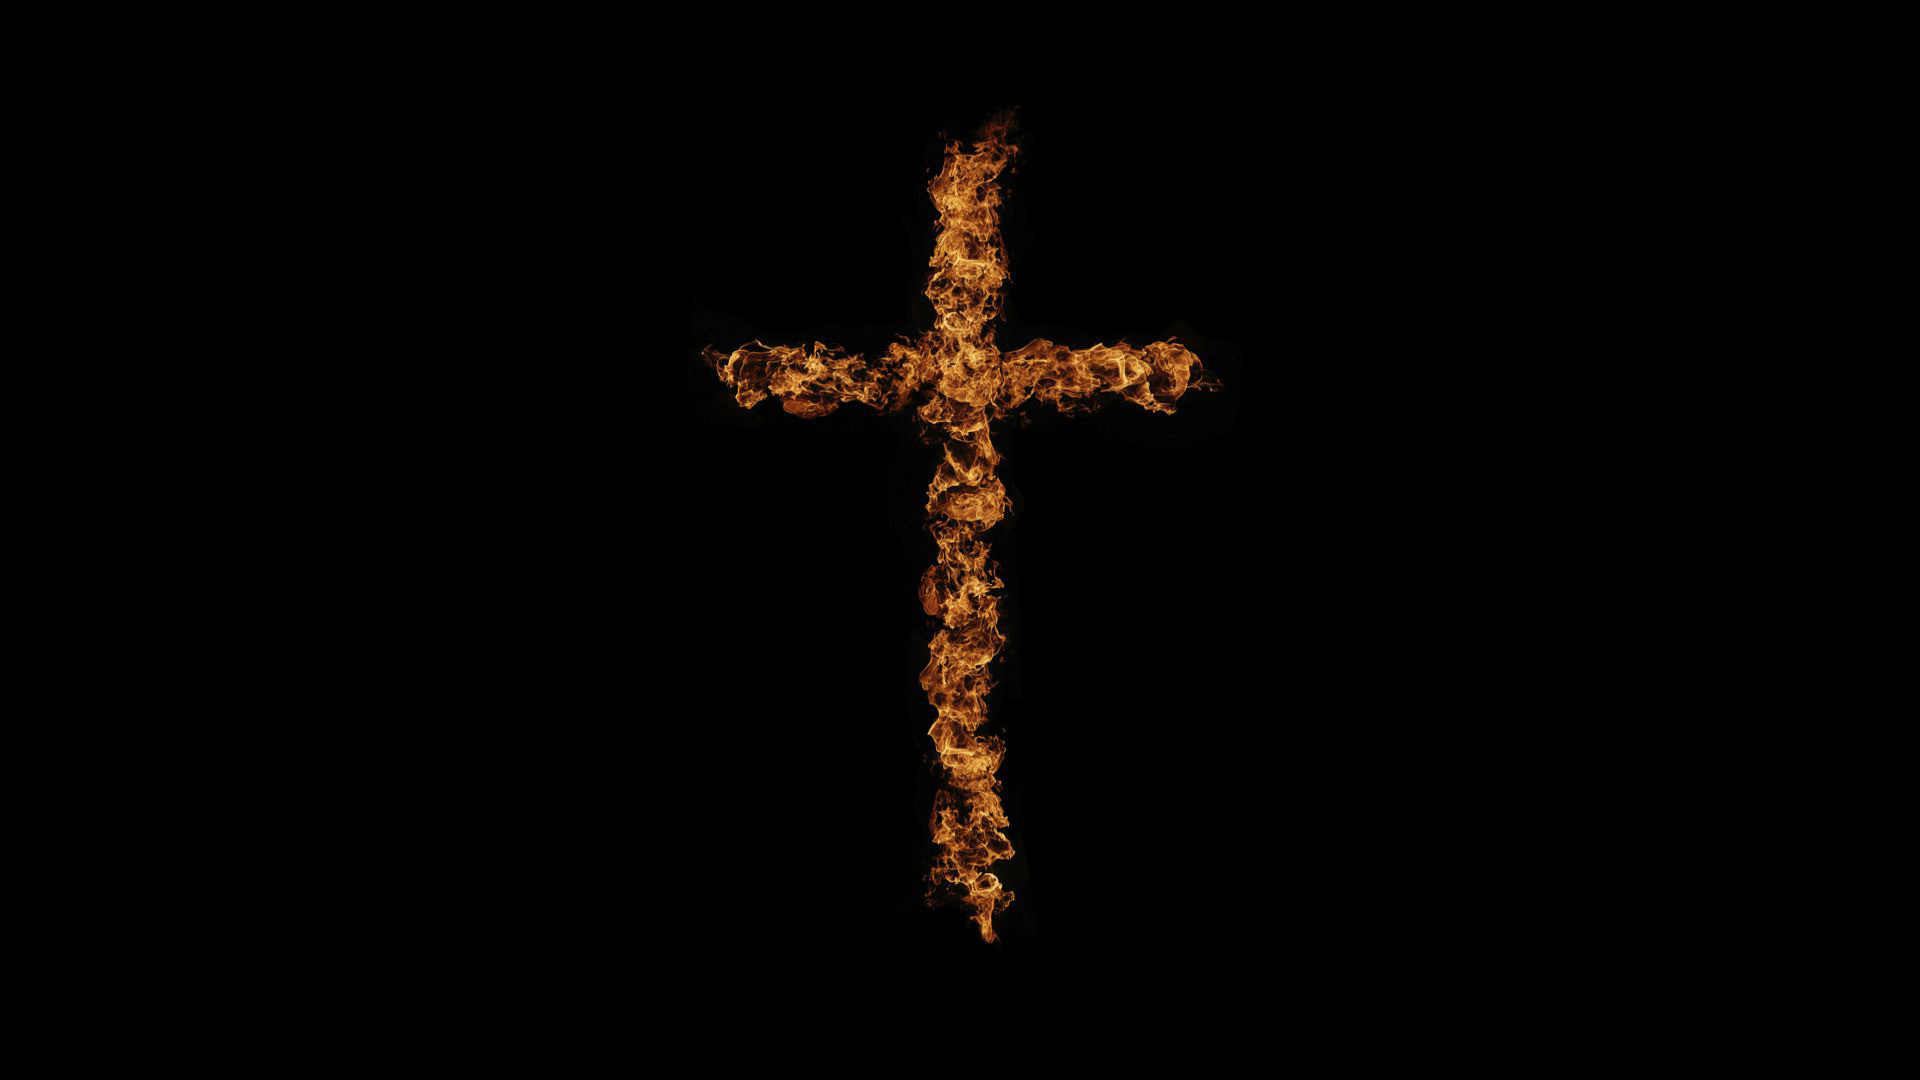 Hd Wallpapers Religious 59 Pictures